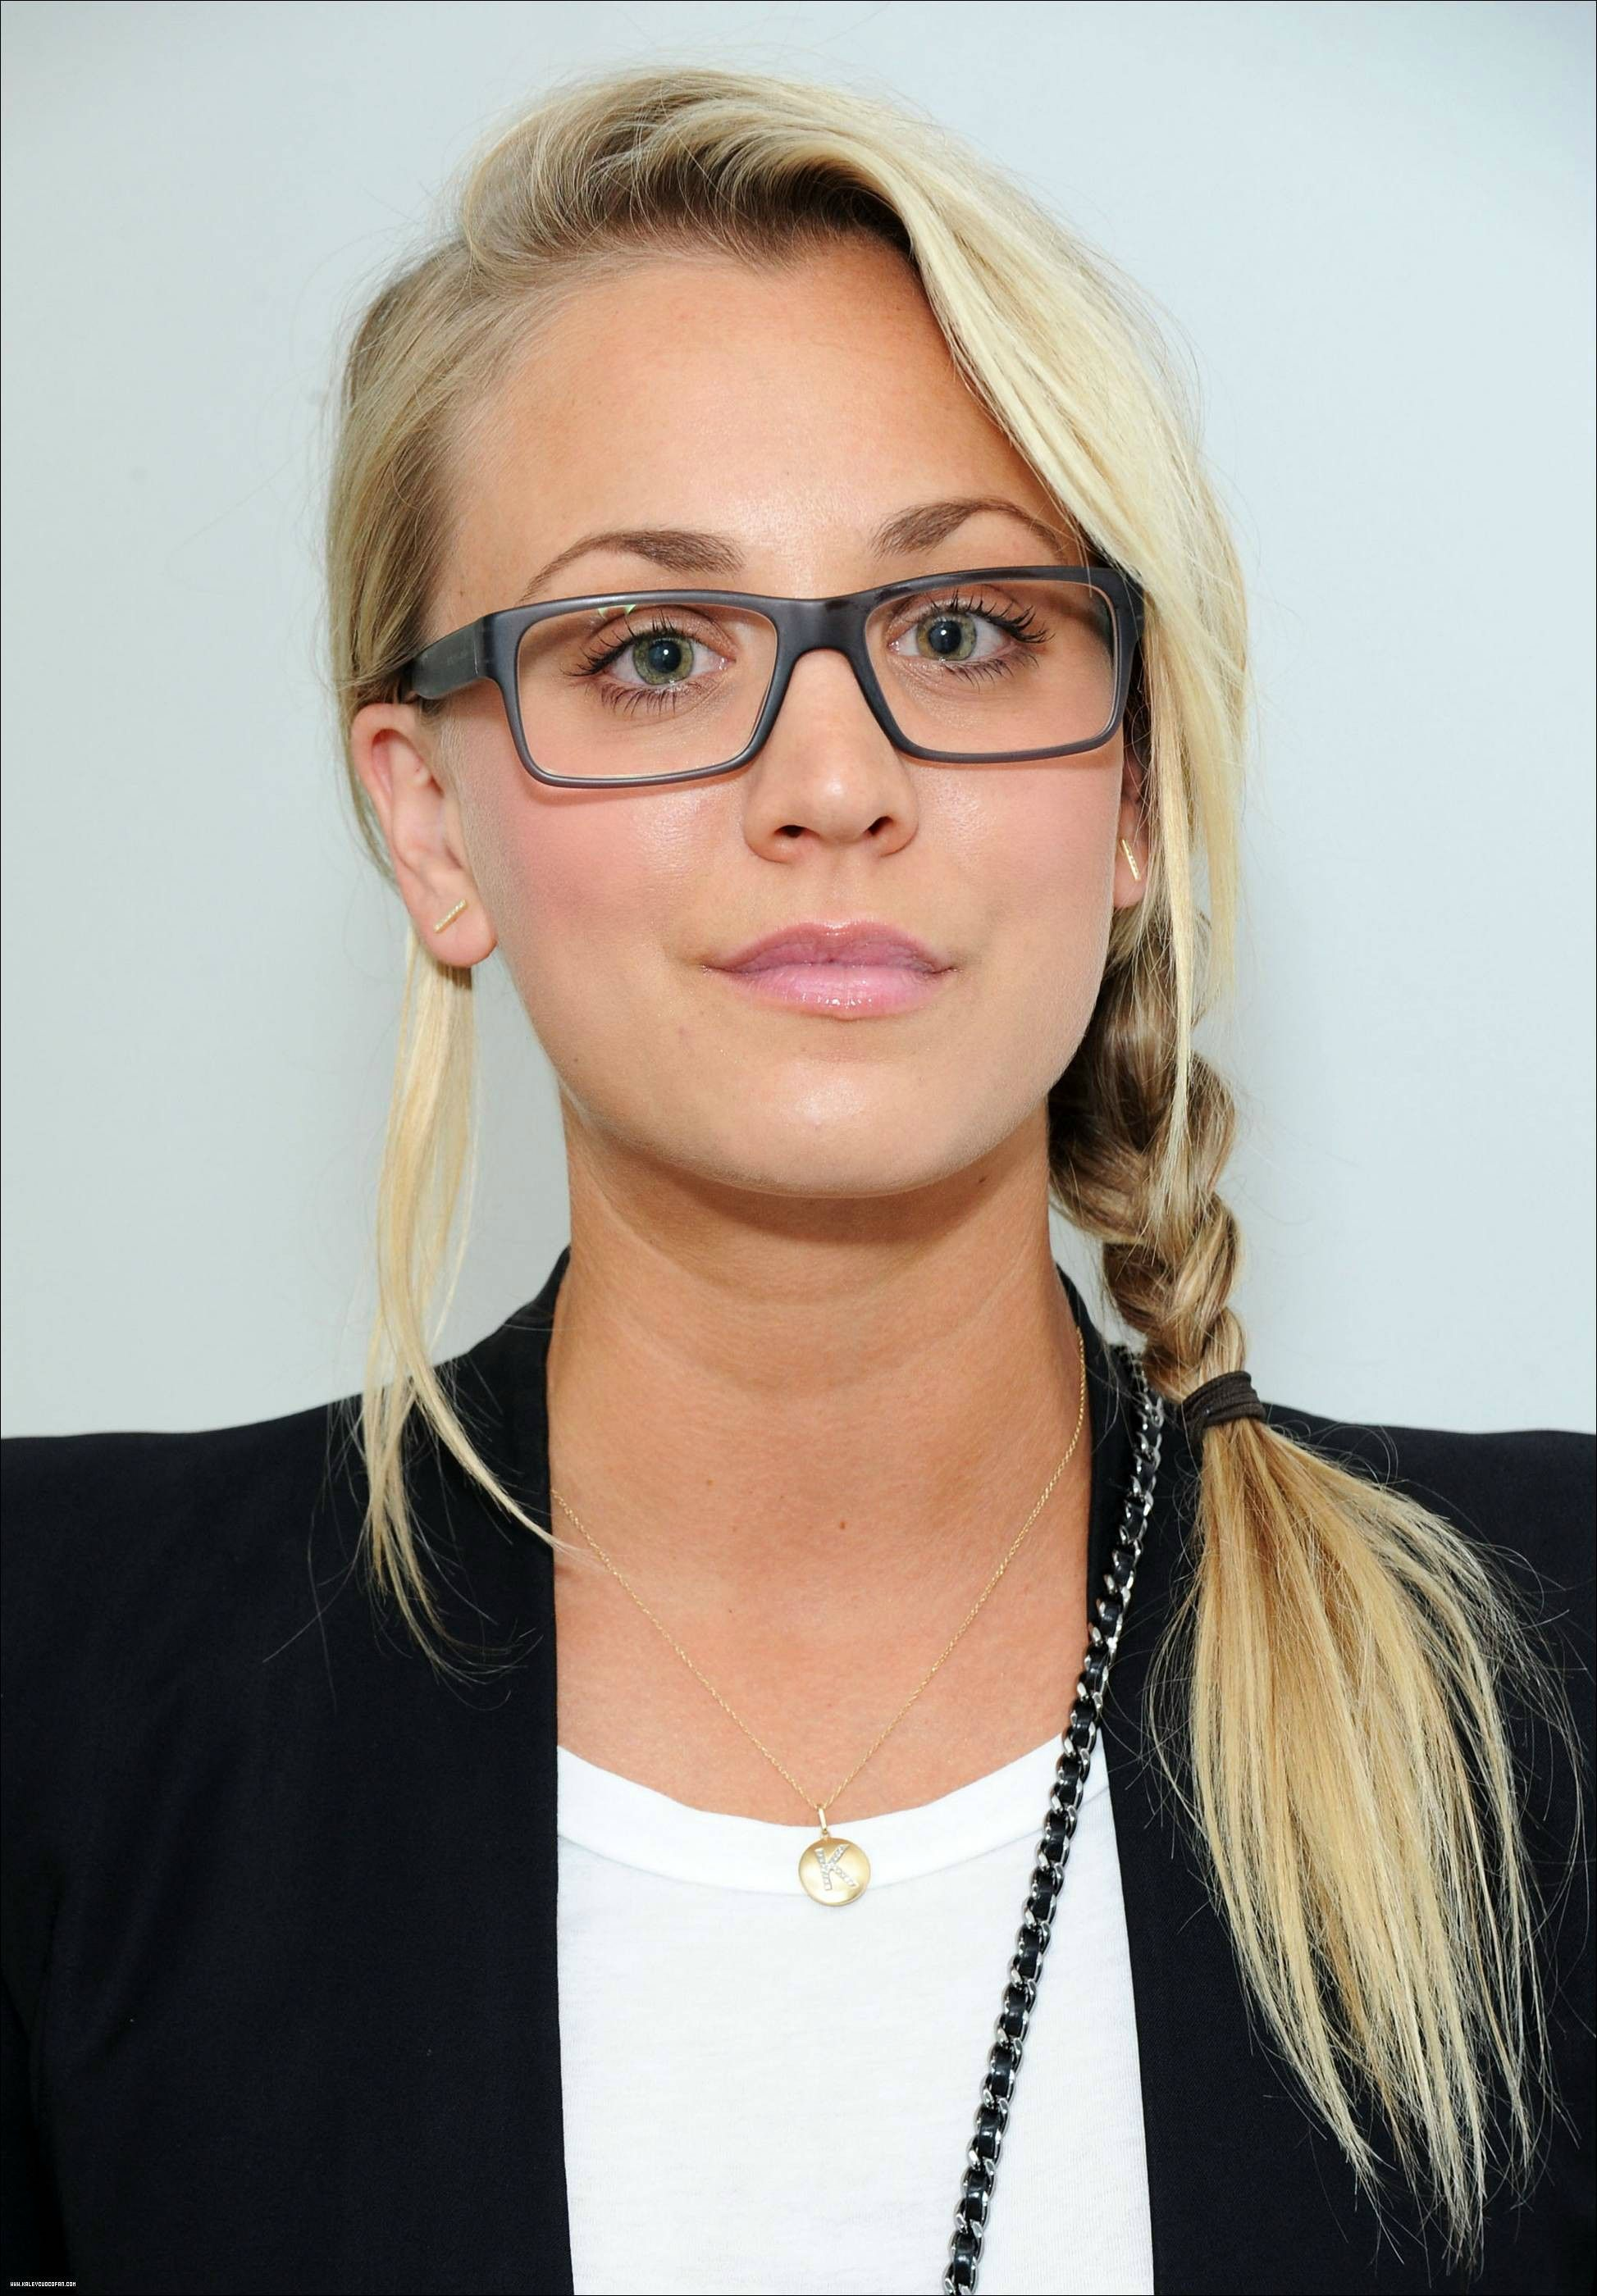 Kaley Cuoco Geek Love She Will Forever Be Known As Penny In My